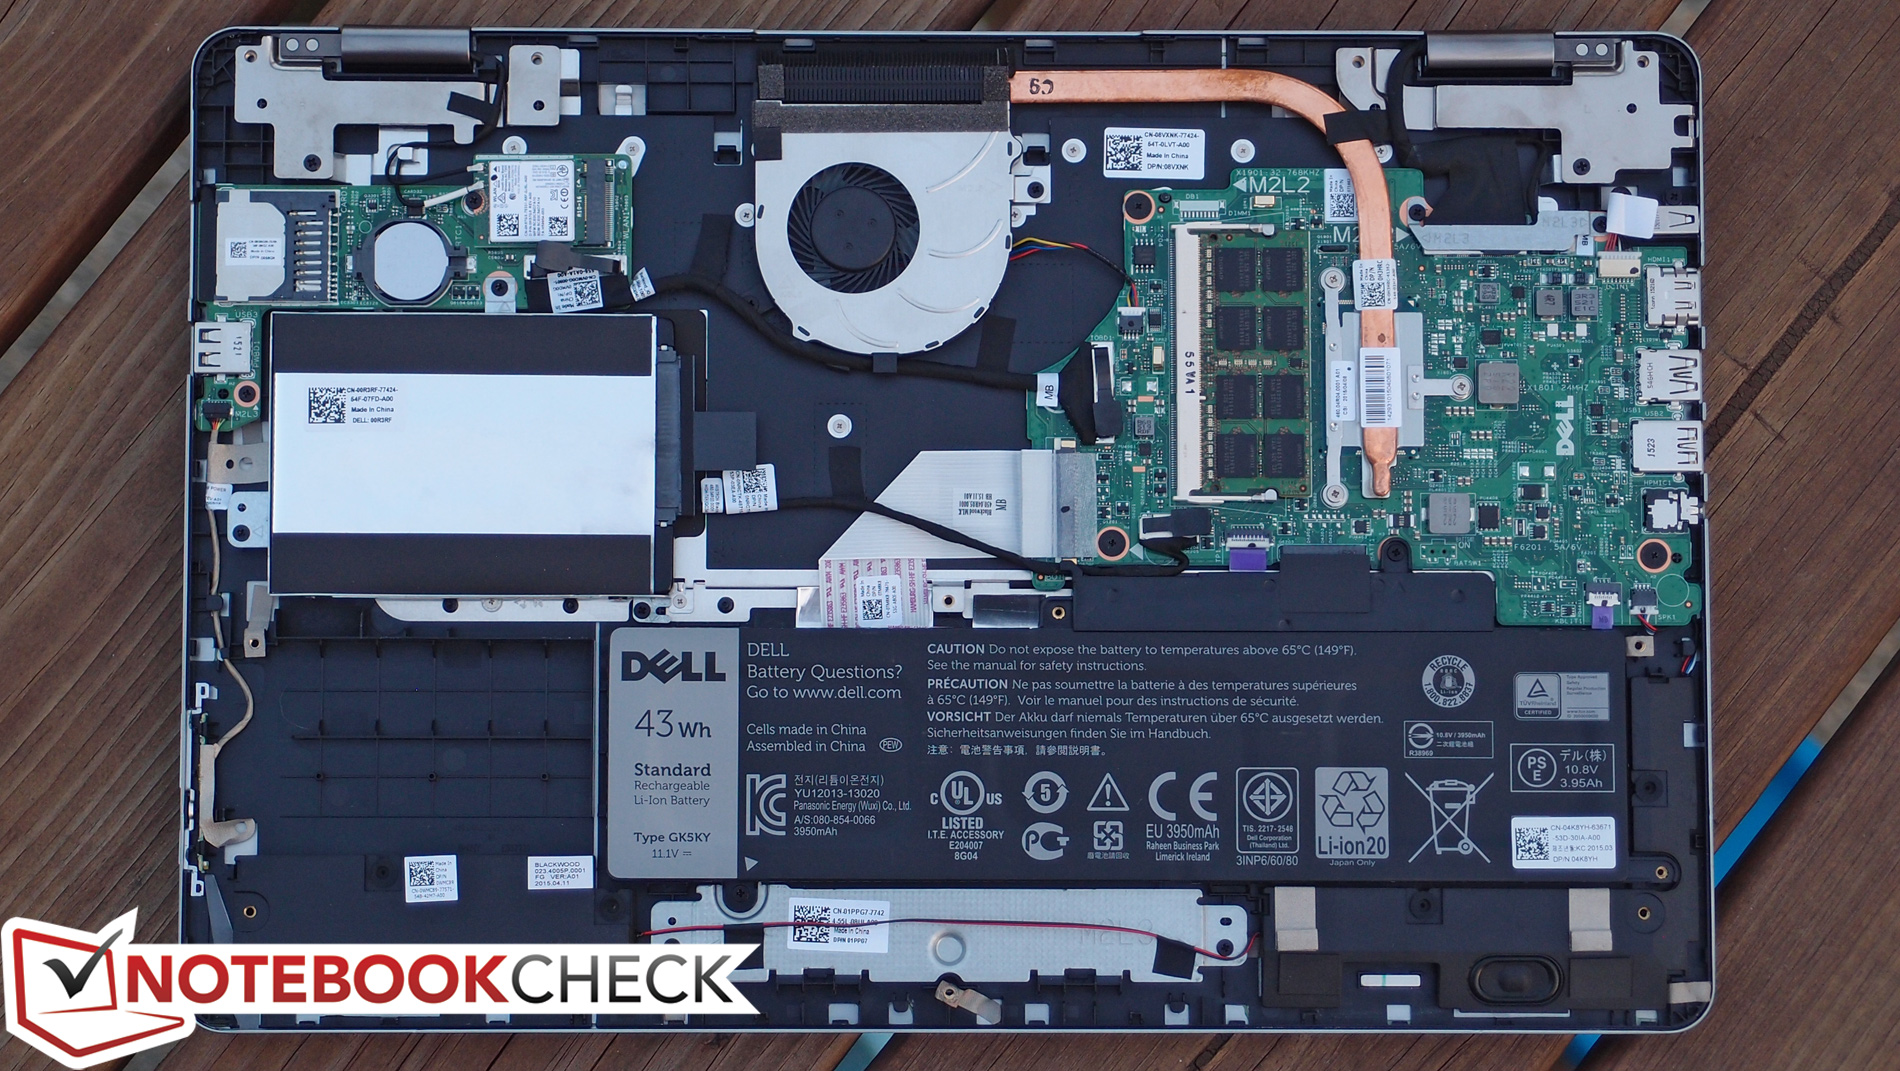 laptop schematics html with Dell Inspiron 15 7558 Convertible Review 150596 0 on Dell Inspiron 15 7558 Convertible Review 150596 0 additionally Free Download For Photo Grid Free Download For Laptop also Schematics as well Intel Another Detailed CPU Roadmap Leak 2017 2018 173996 0 likewise Board Camera Wiring Diagram.